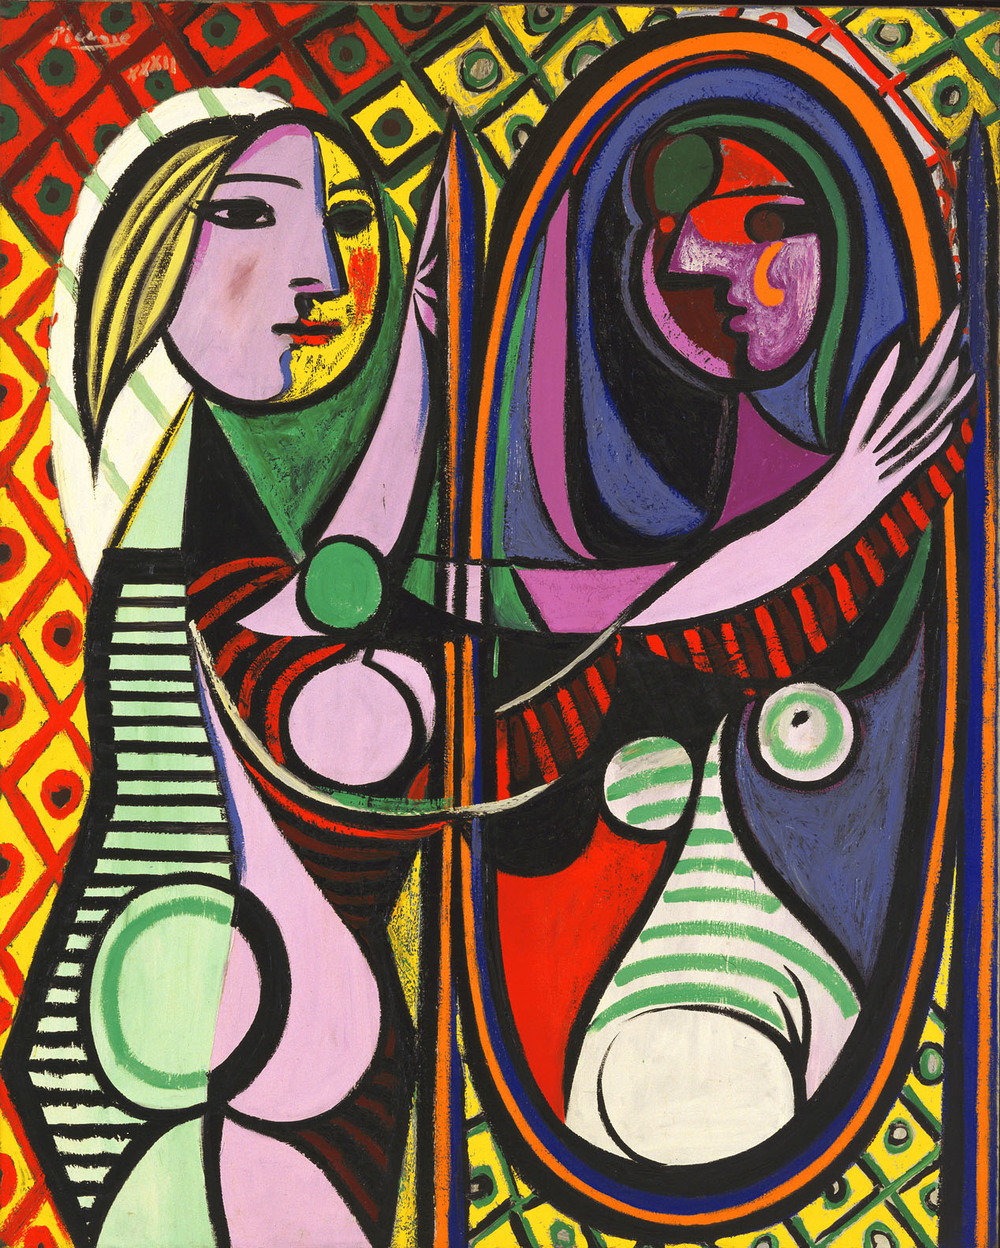 Pablo Picasso,  Girl Before a Mirror,  1932, Oil on canvas